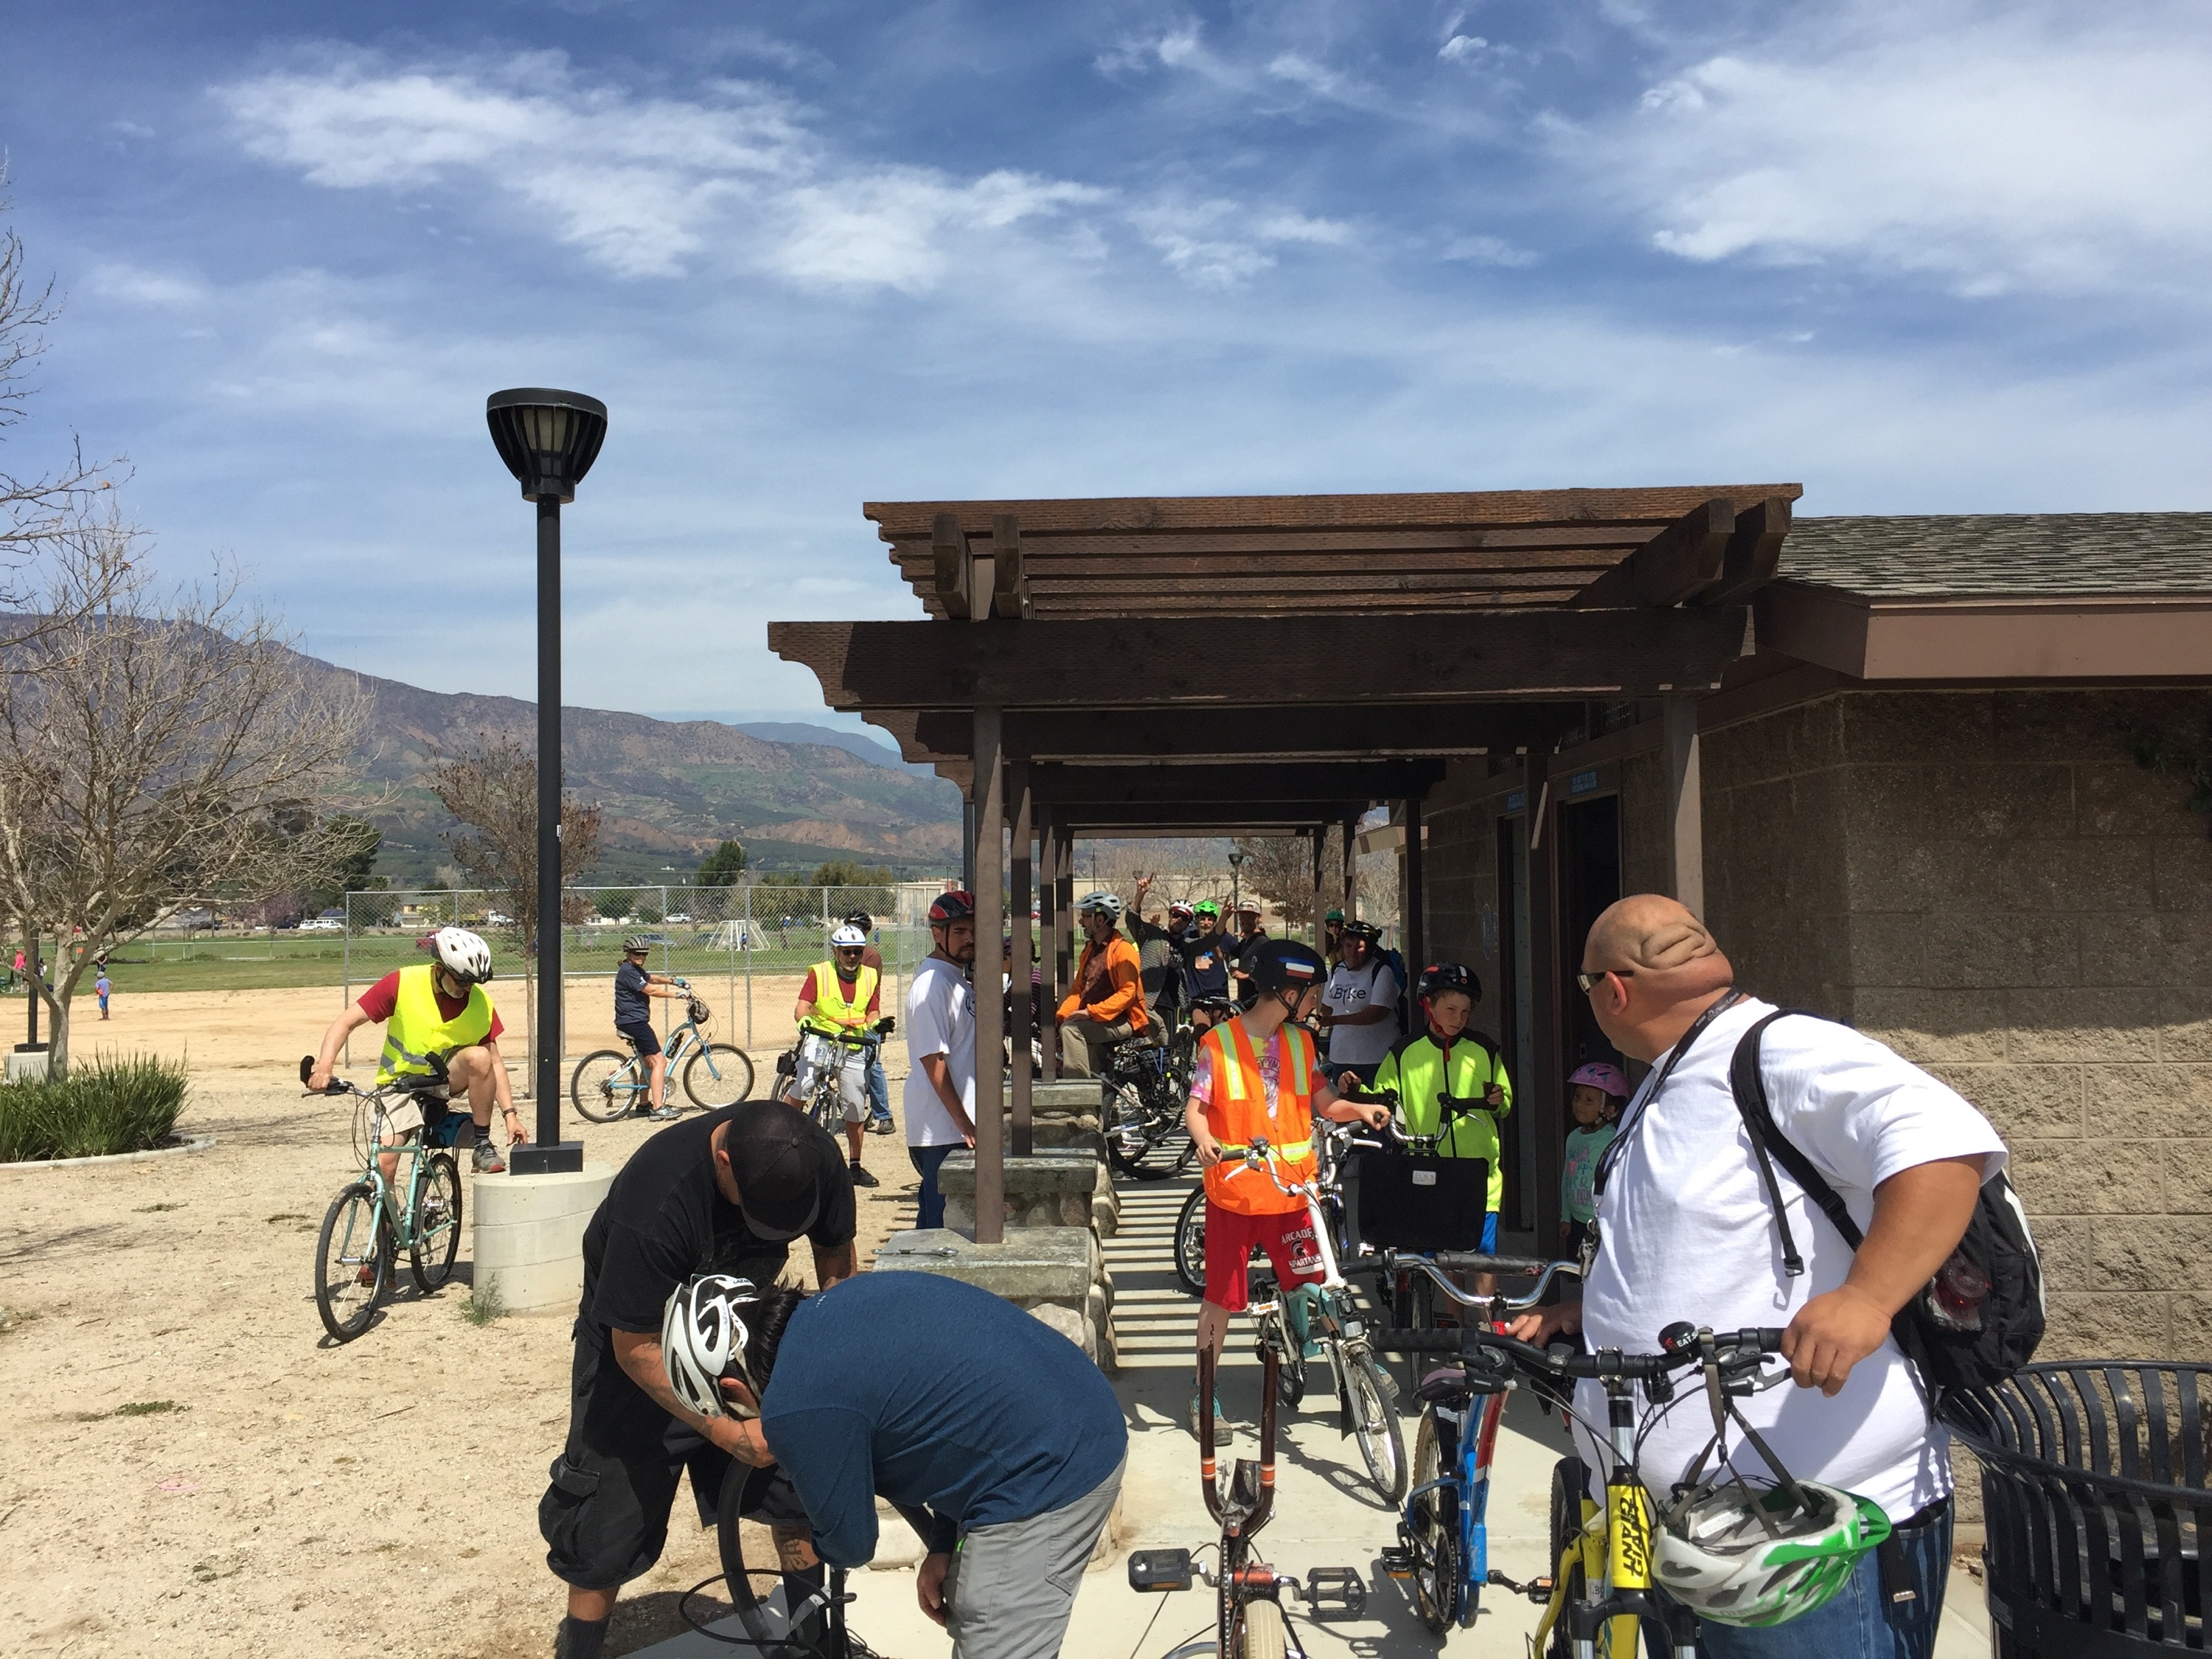 Over 30 riders participated!